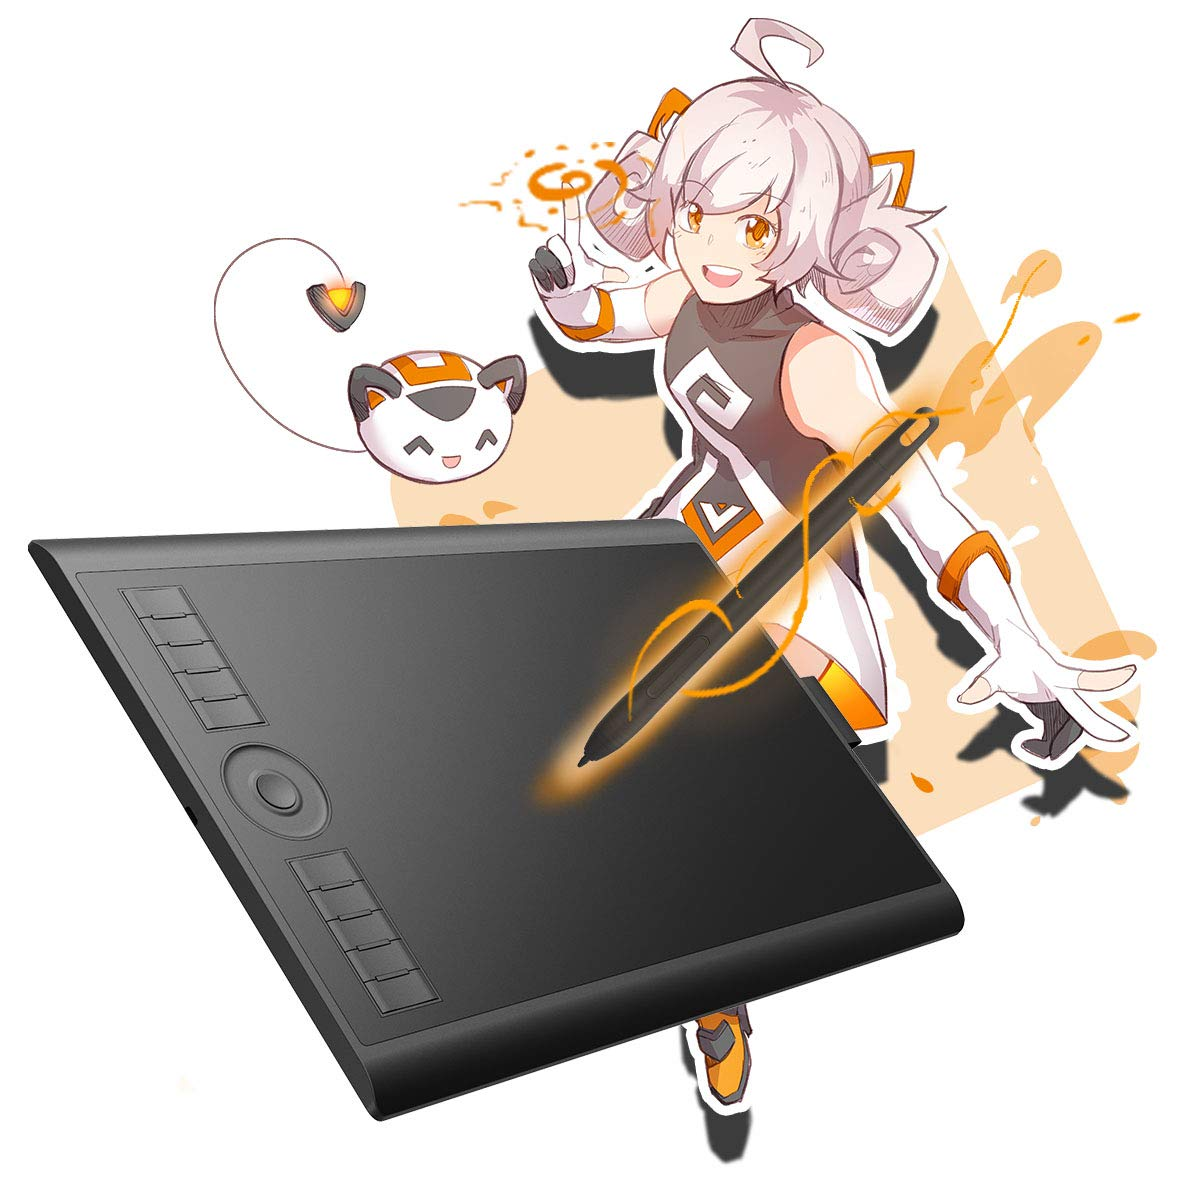 GAOMON M10K2018 10 x 6.25 inches Graphic Drawing Tablet 8192 Levels of Pressure Digital Pen Tablet with Battery-Free Stylus